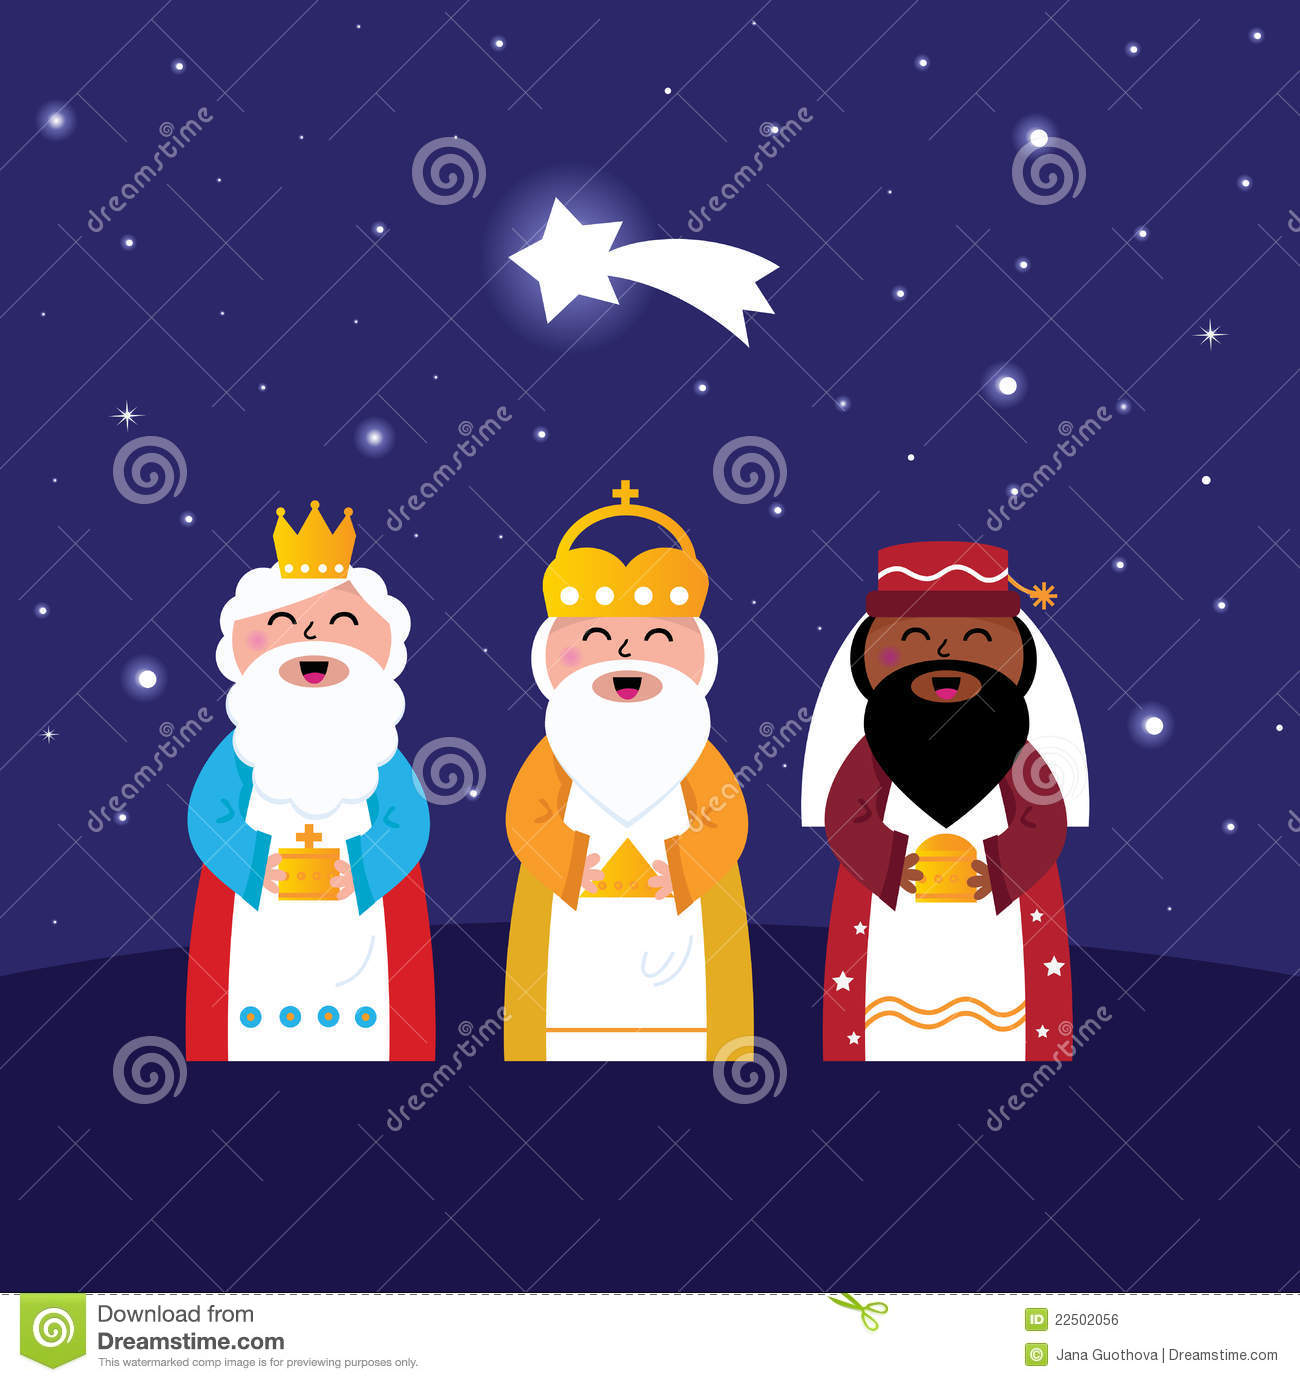 The three kings gifts to jesus clipart.